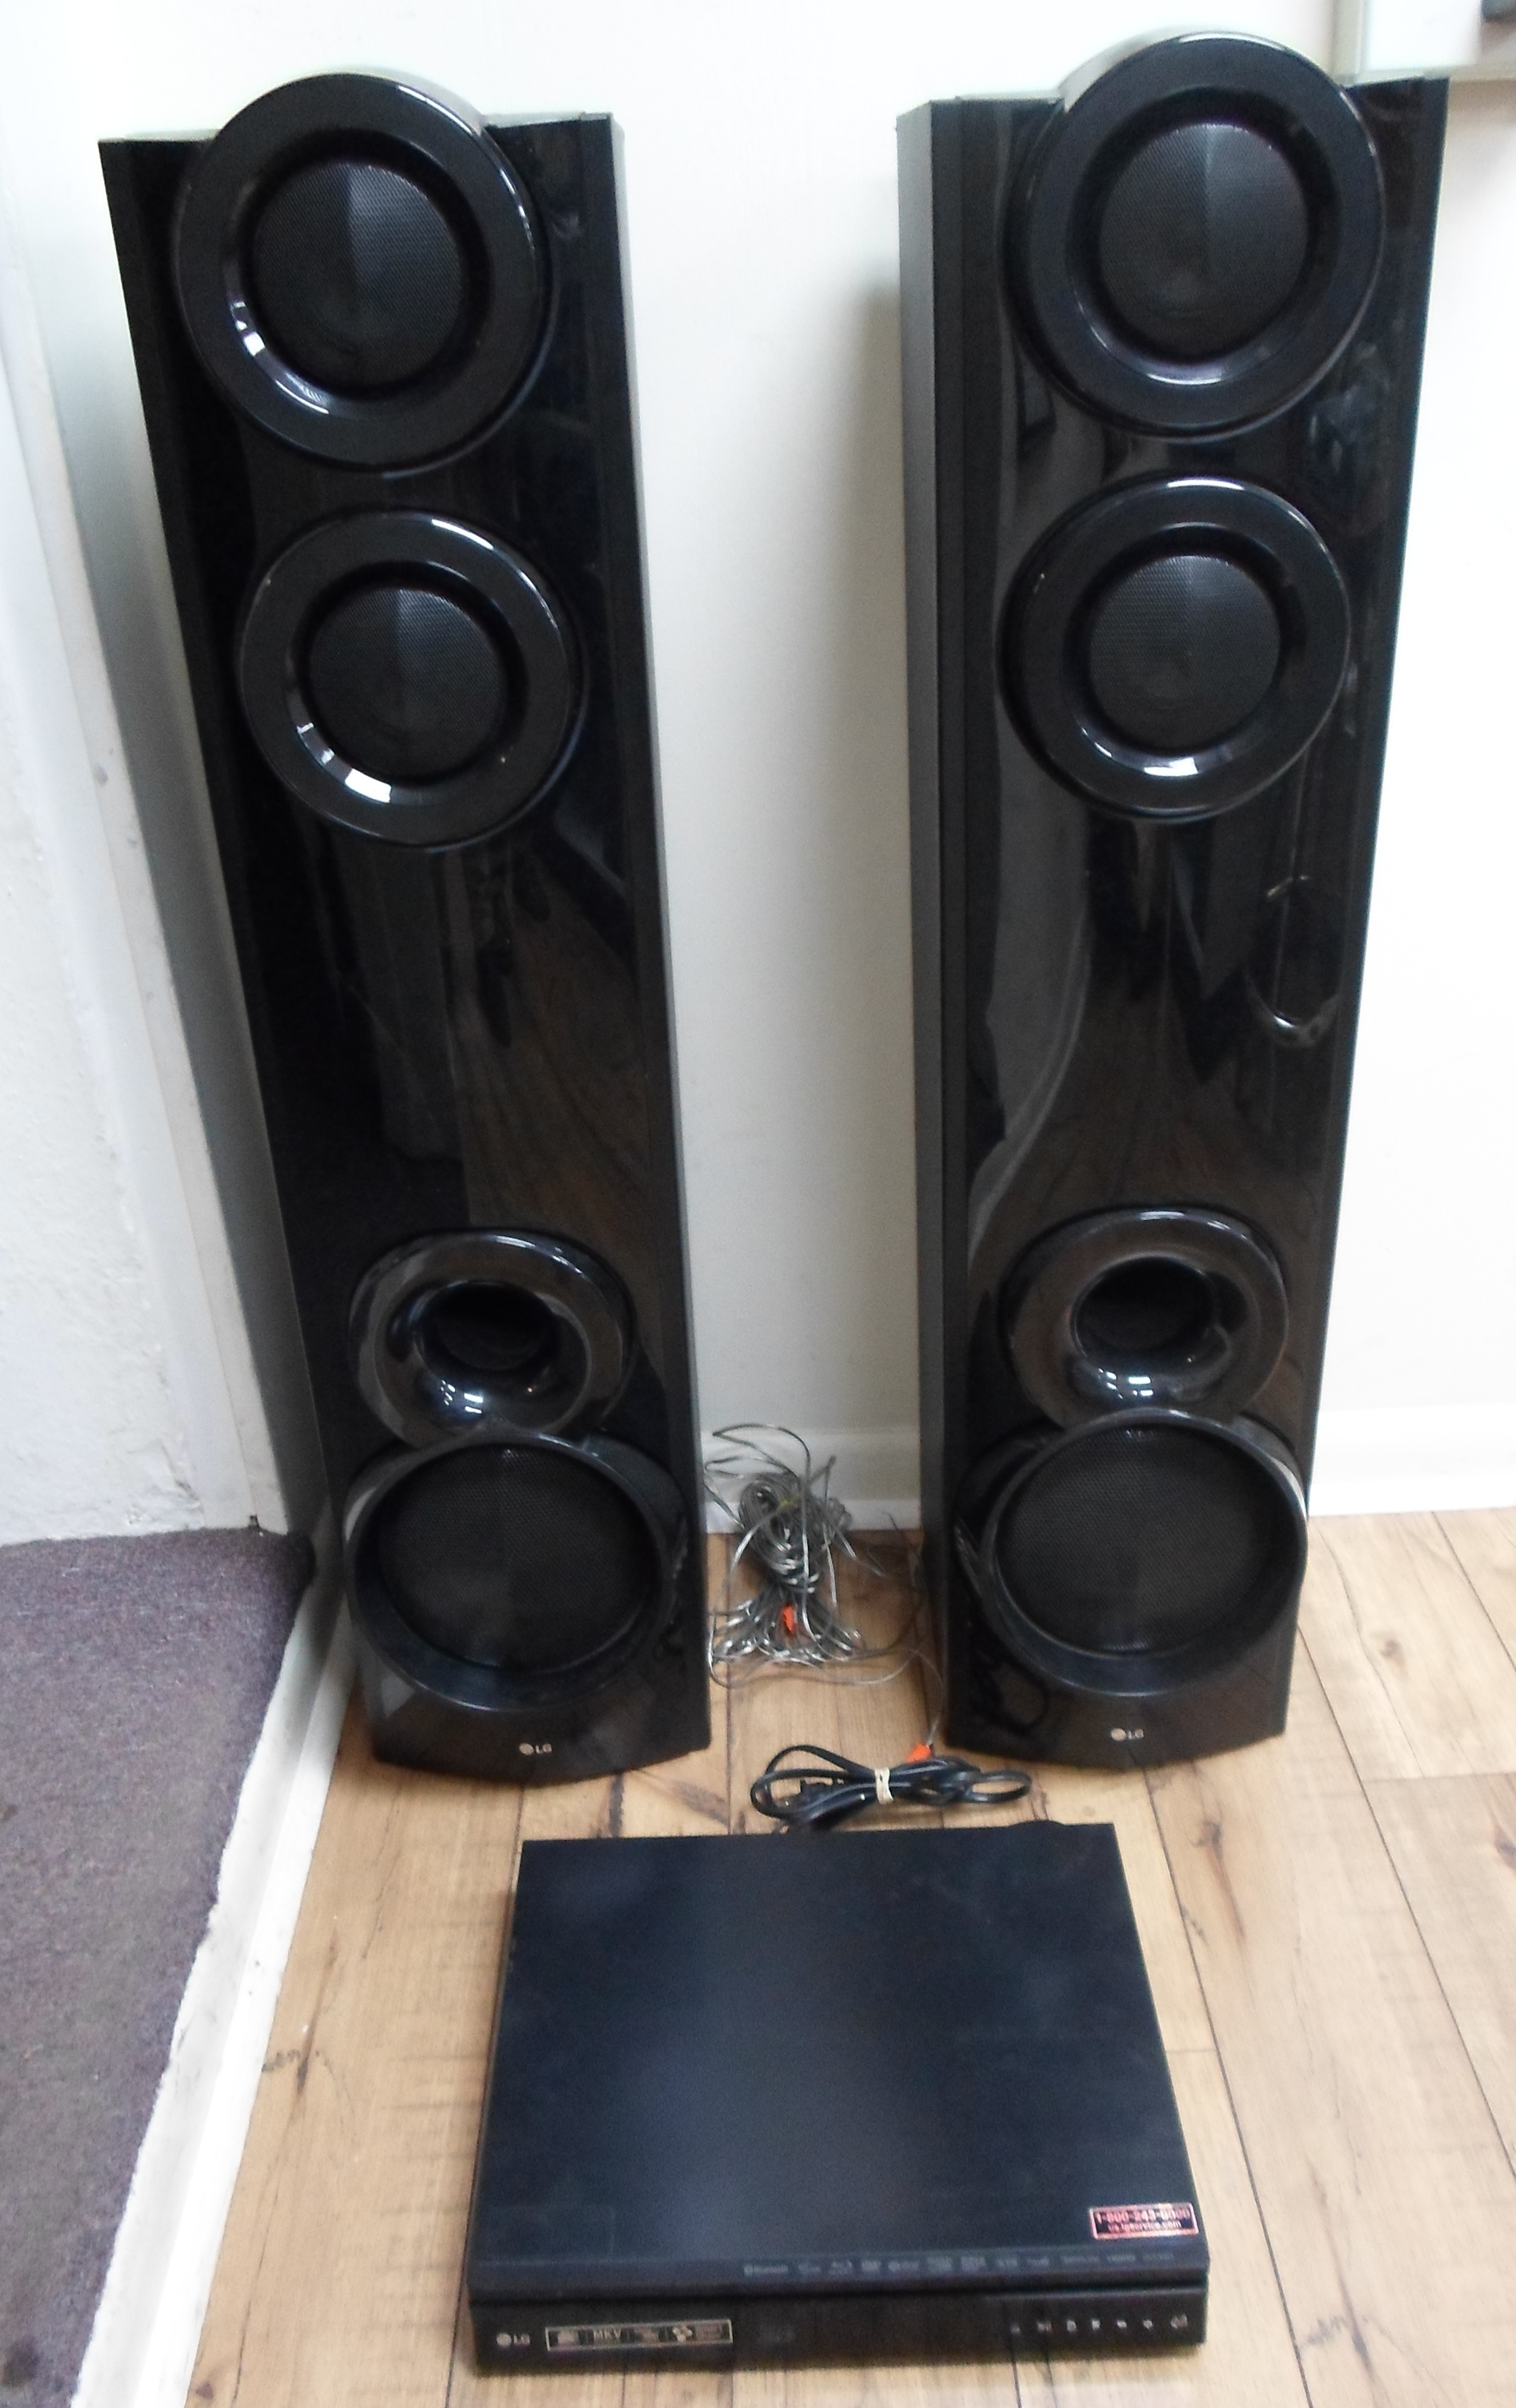 LG - LHB675 - SURROUND SOUND AND BLU RAY PLAYER